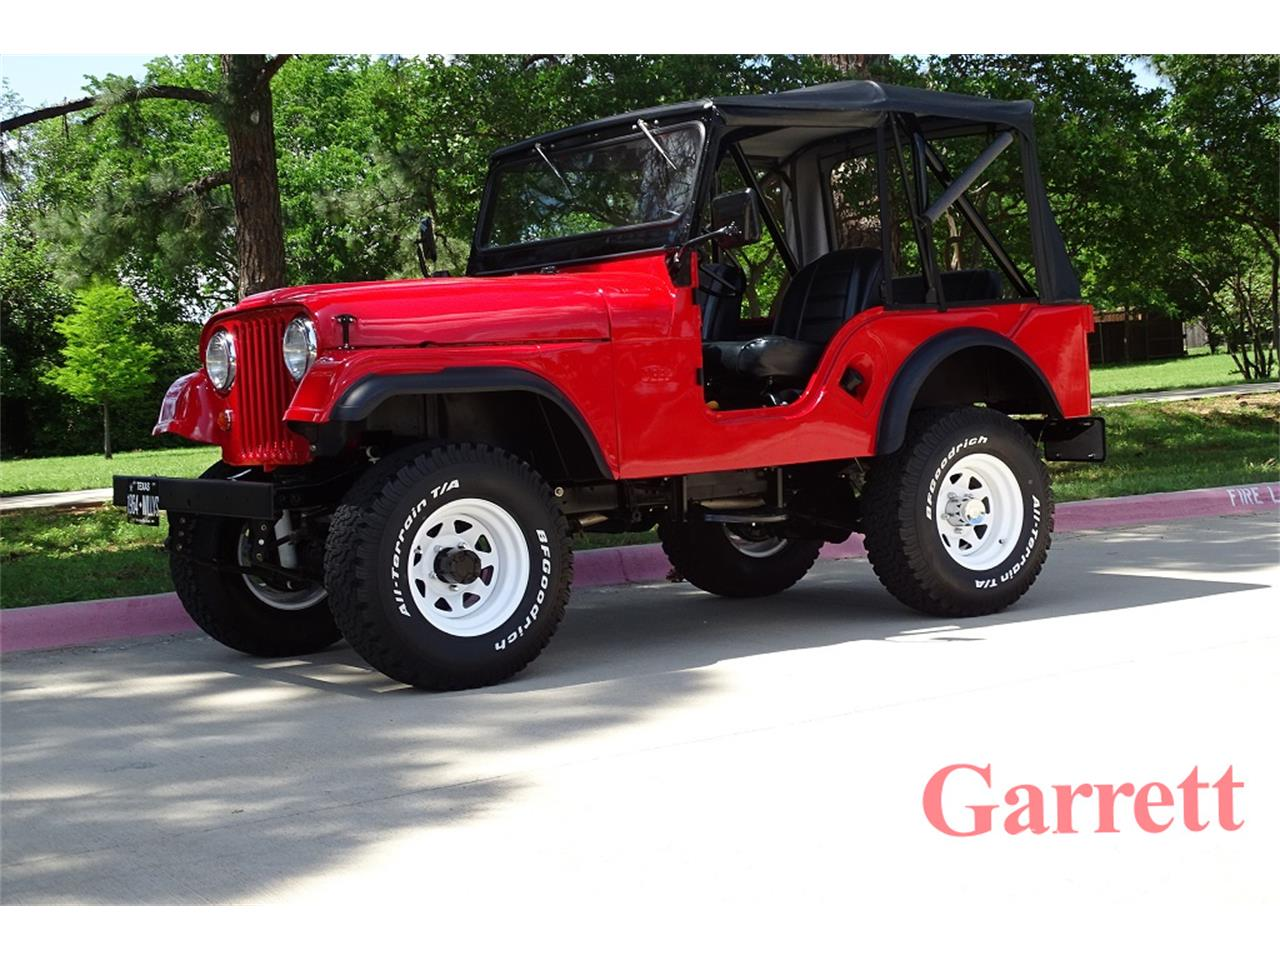 Large Picture of Classic '64 Willys Jeep located in Lewisville TEXAS (TX) - $16,500.00 Offered by Garrett Classics - Q4KI